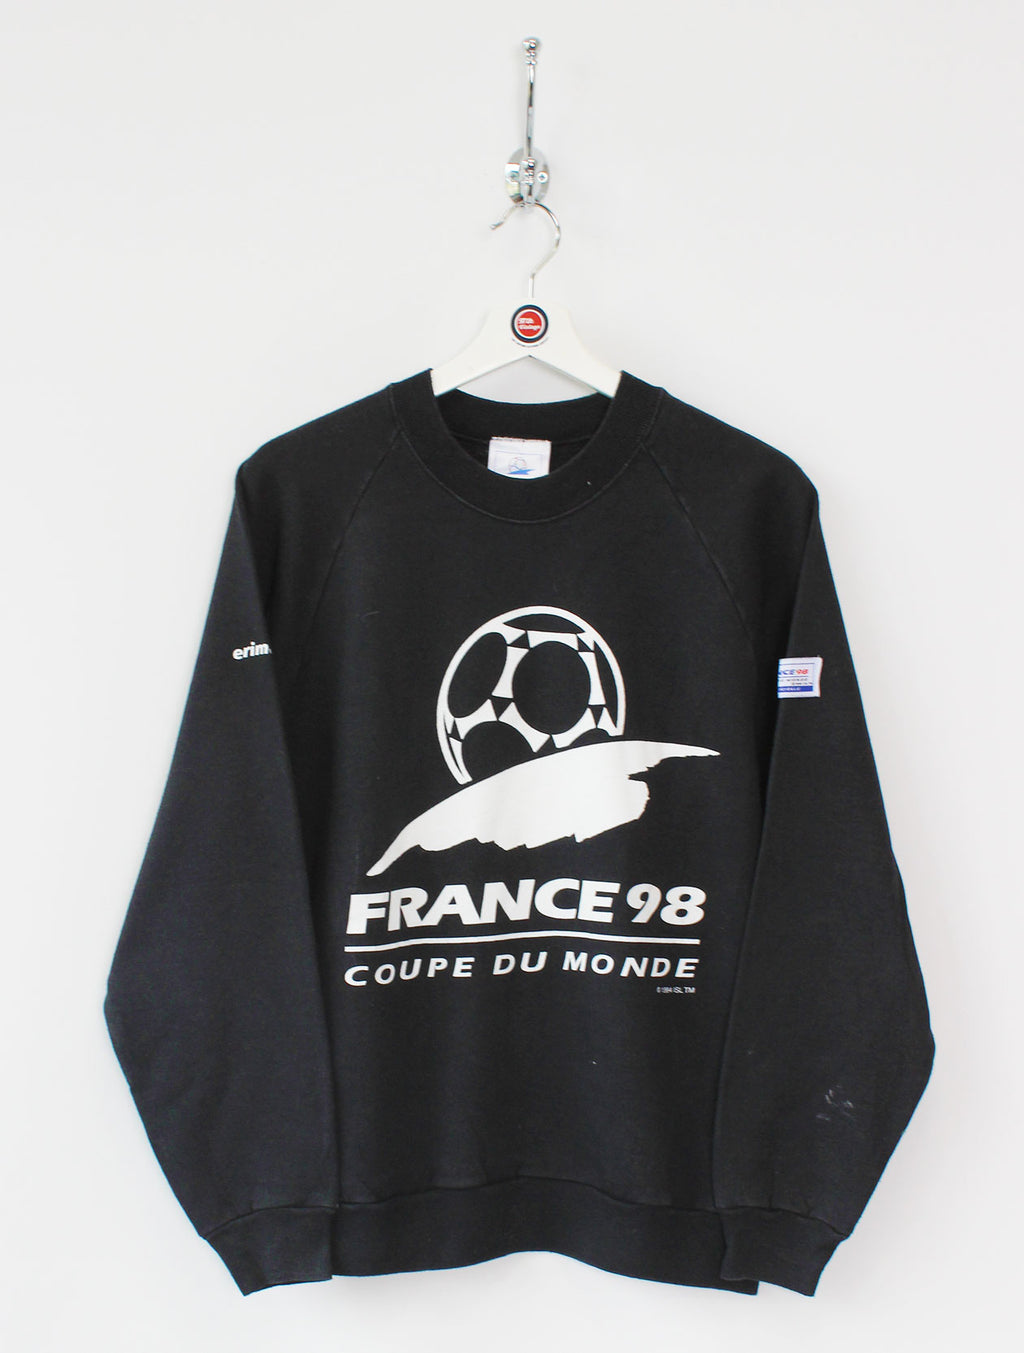 1998 France World Cup Sweatshirt (S)